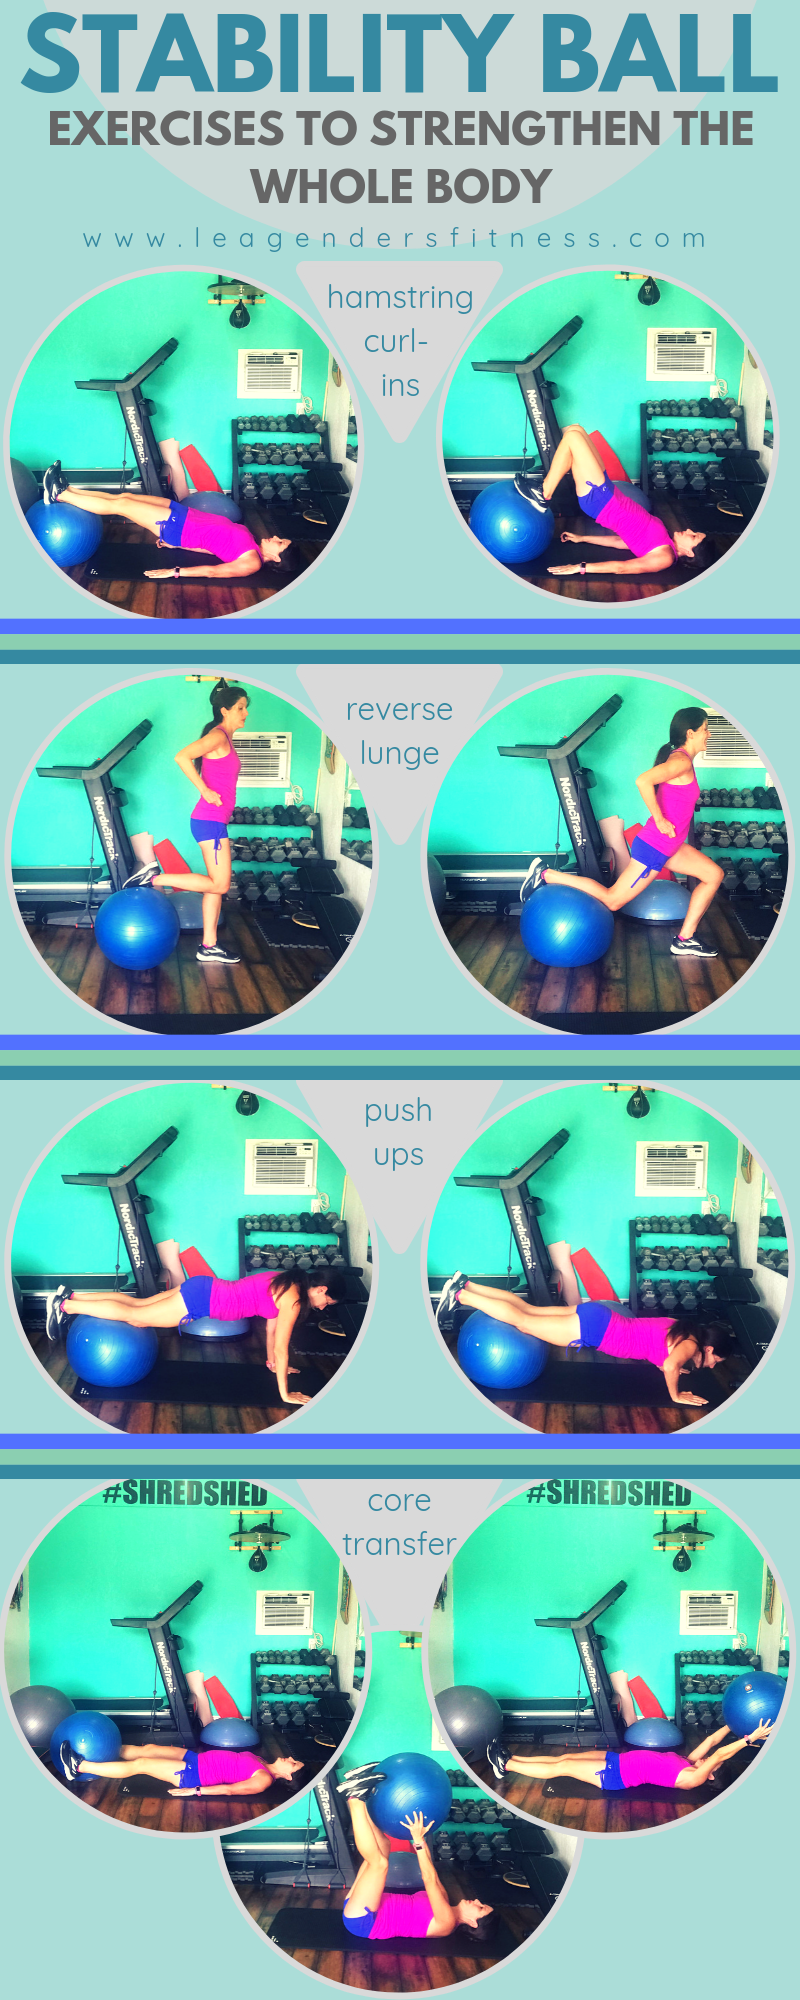 stability ball exercises to strengthen the whole body. Save to your favorite Pinterest board for later.